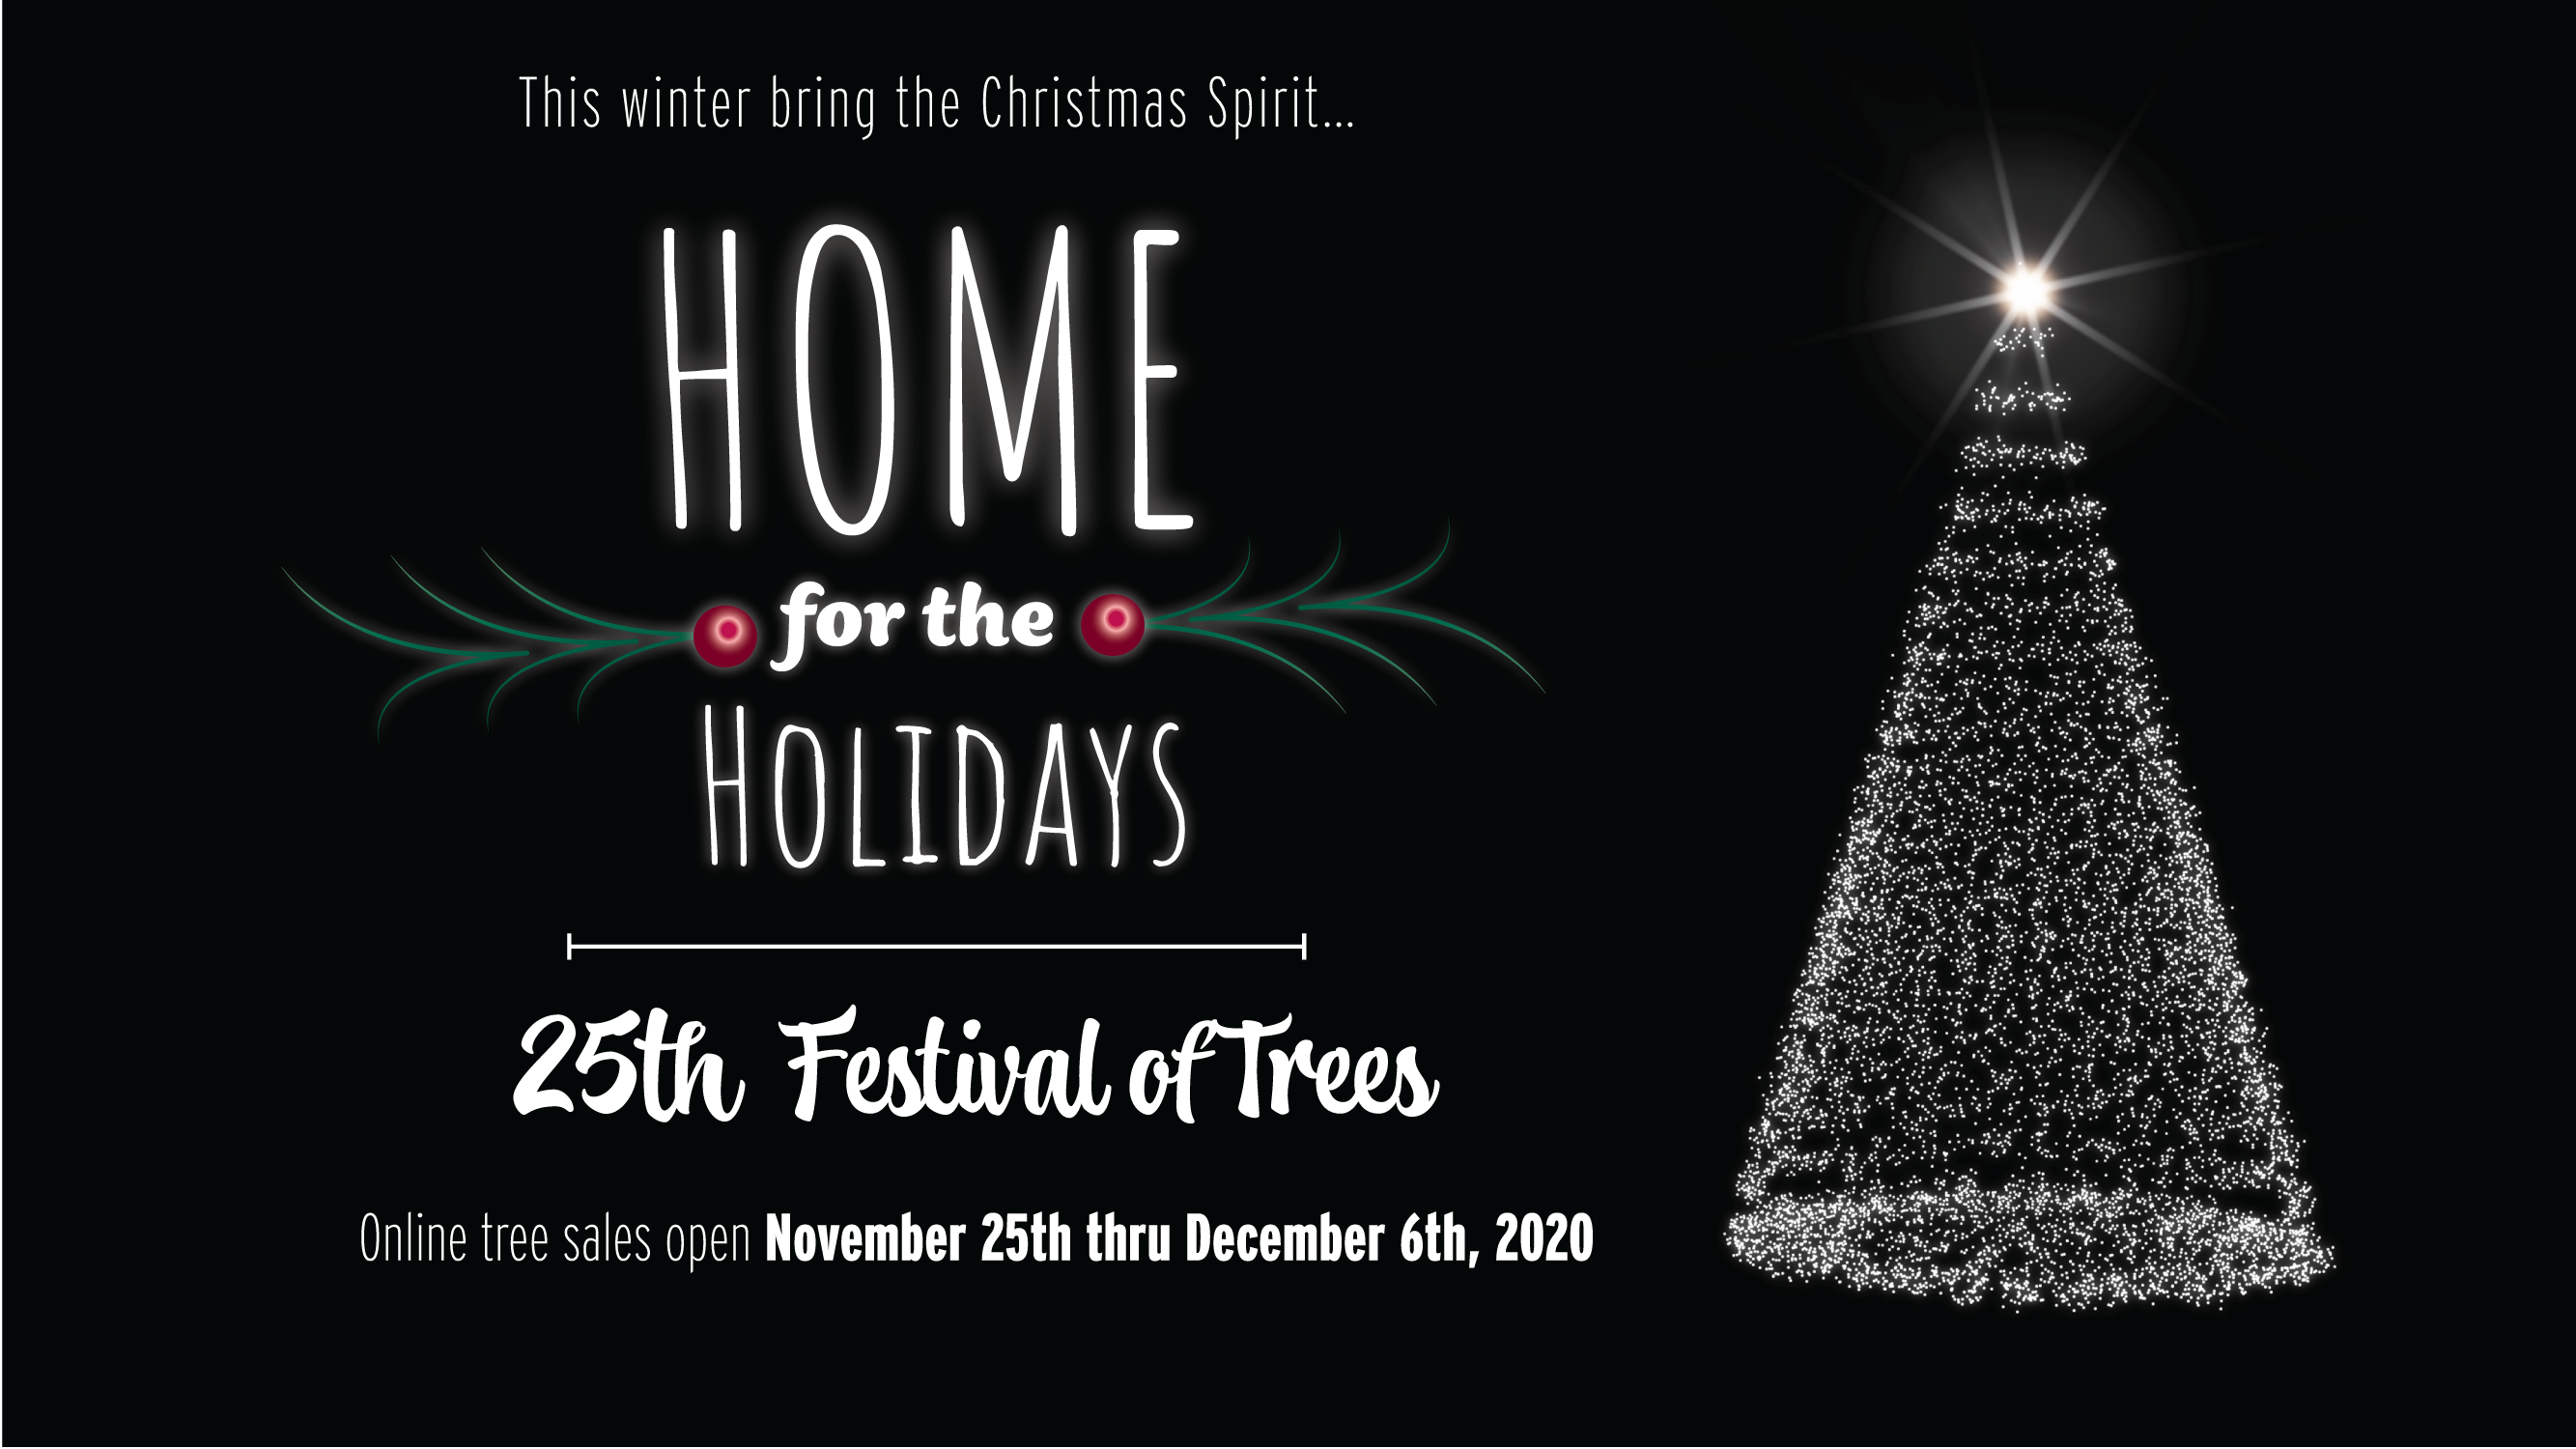 25th Festival of Trees